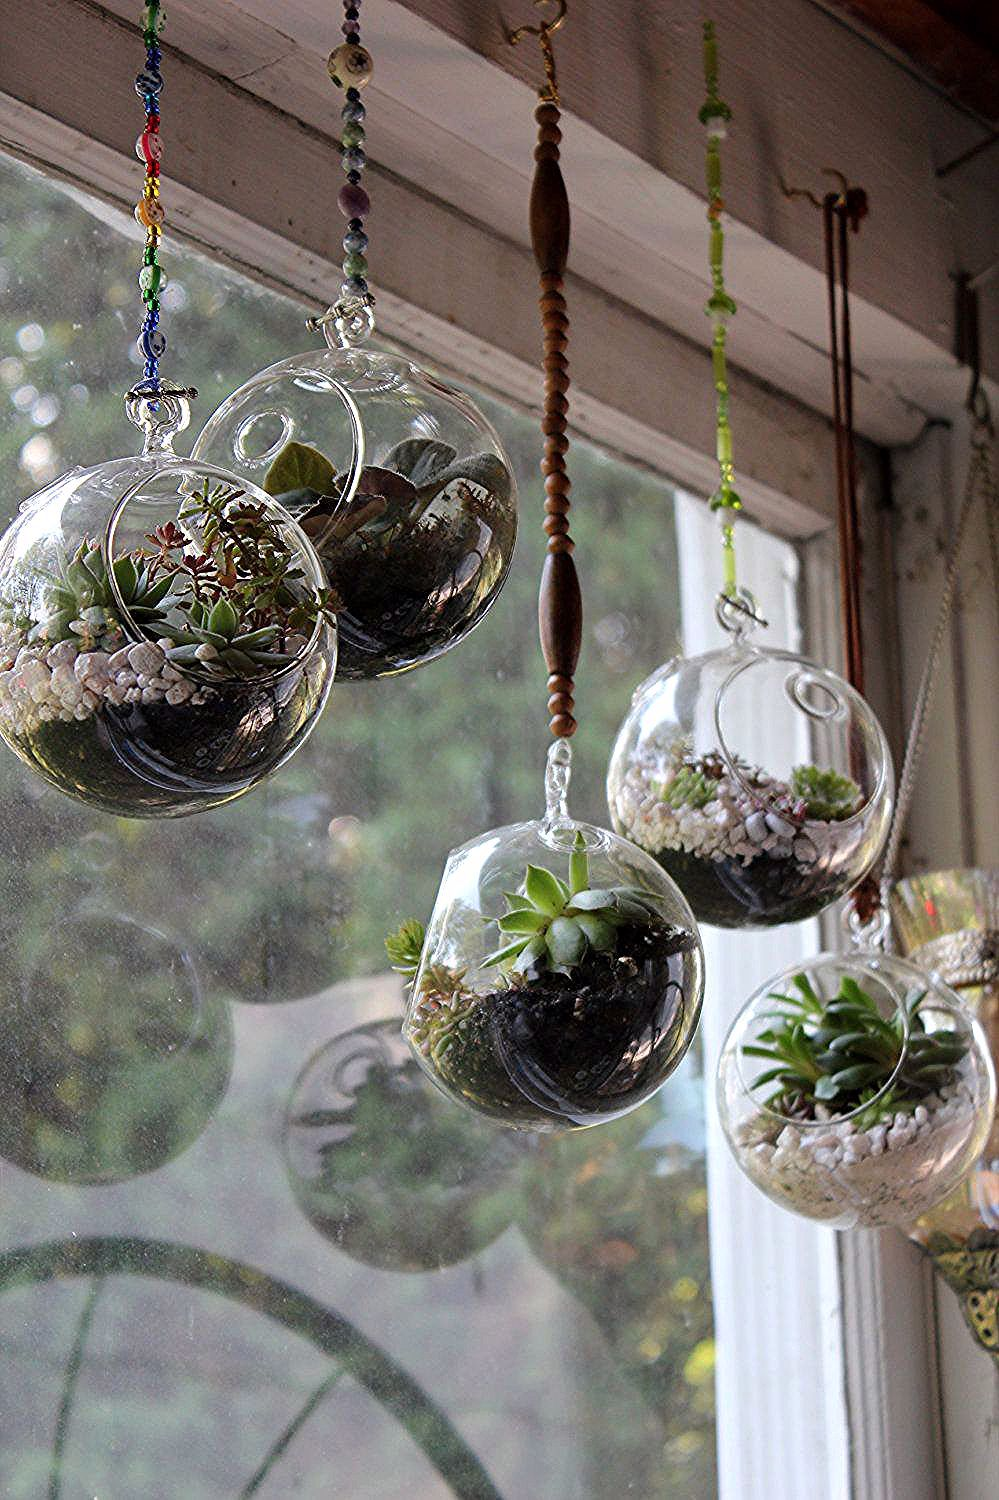 96 Recycled Hand Blown Glass Globe With Custom Purple Stone Hanging Chain 15 00 Via Etsy Hanging G Hanging Air Plants Hanging Plants Indoor Hanging Plants